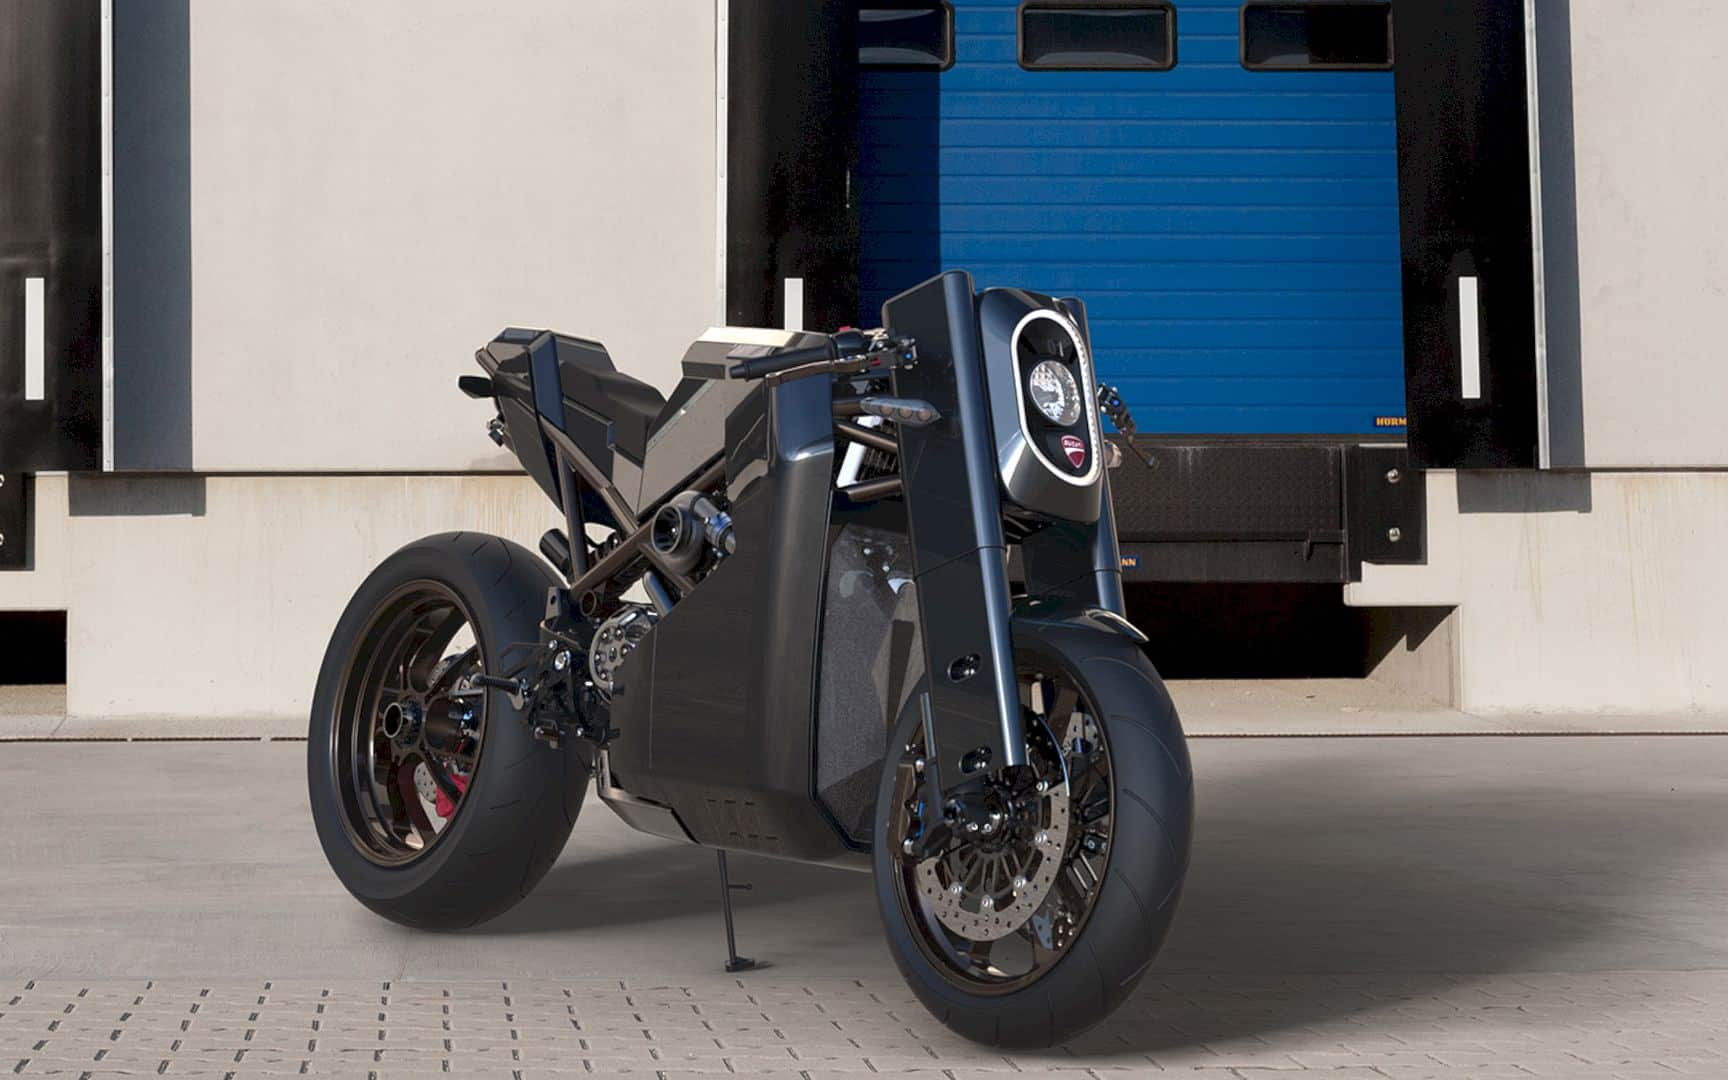 BIG FOOT: An Automotive Design of Ducati Custom Bike